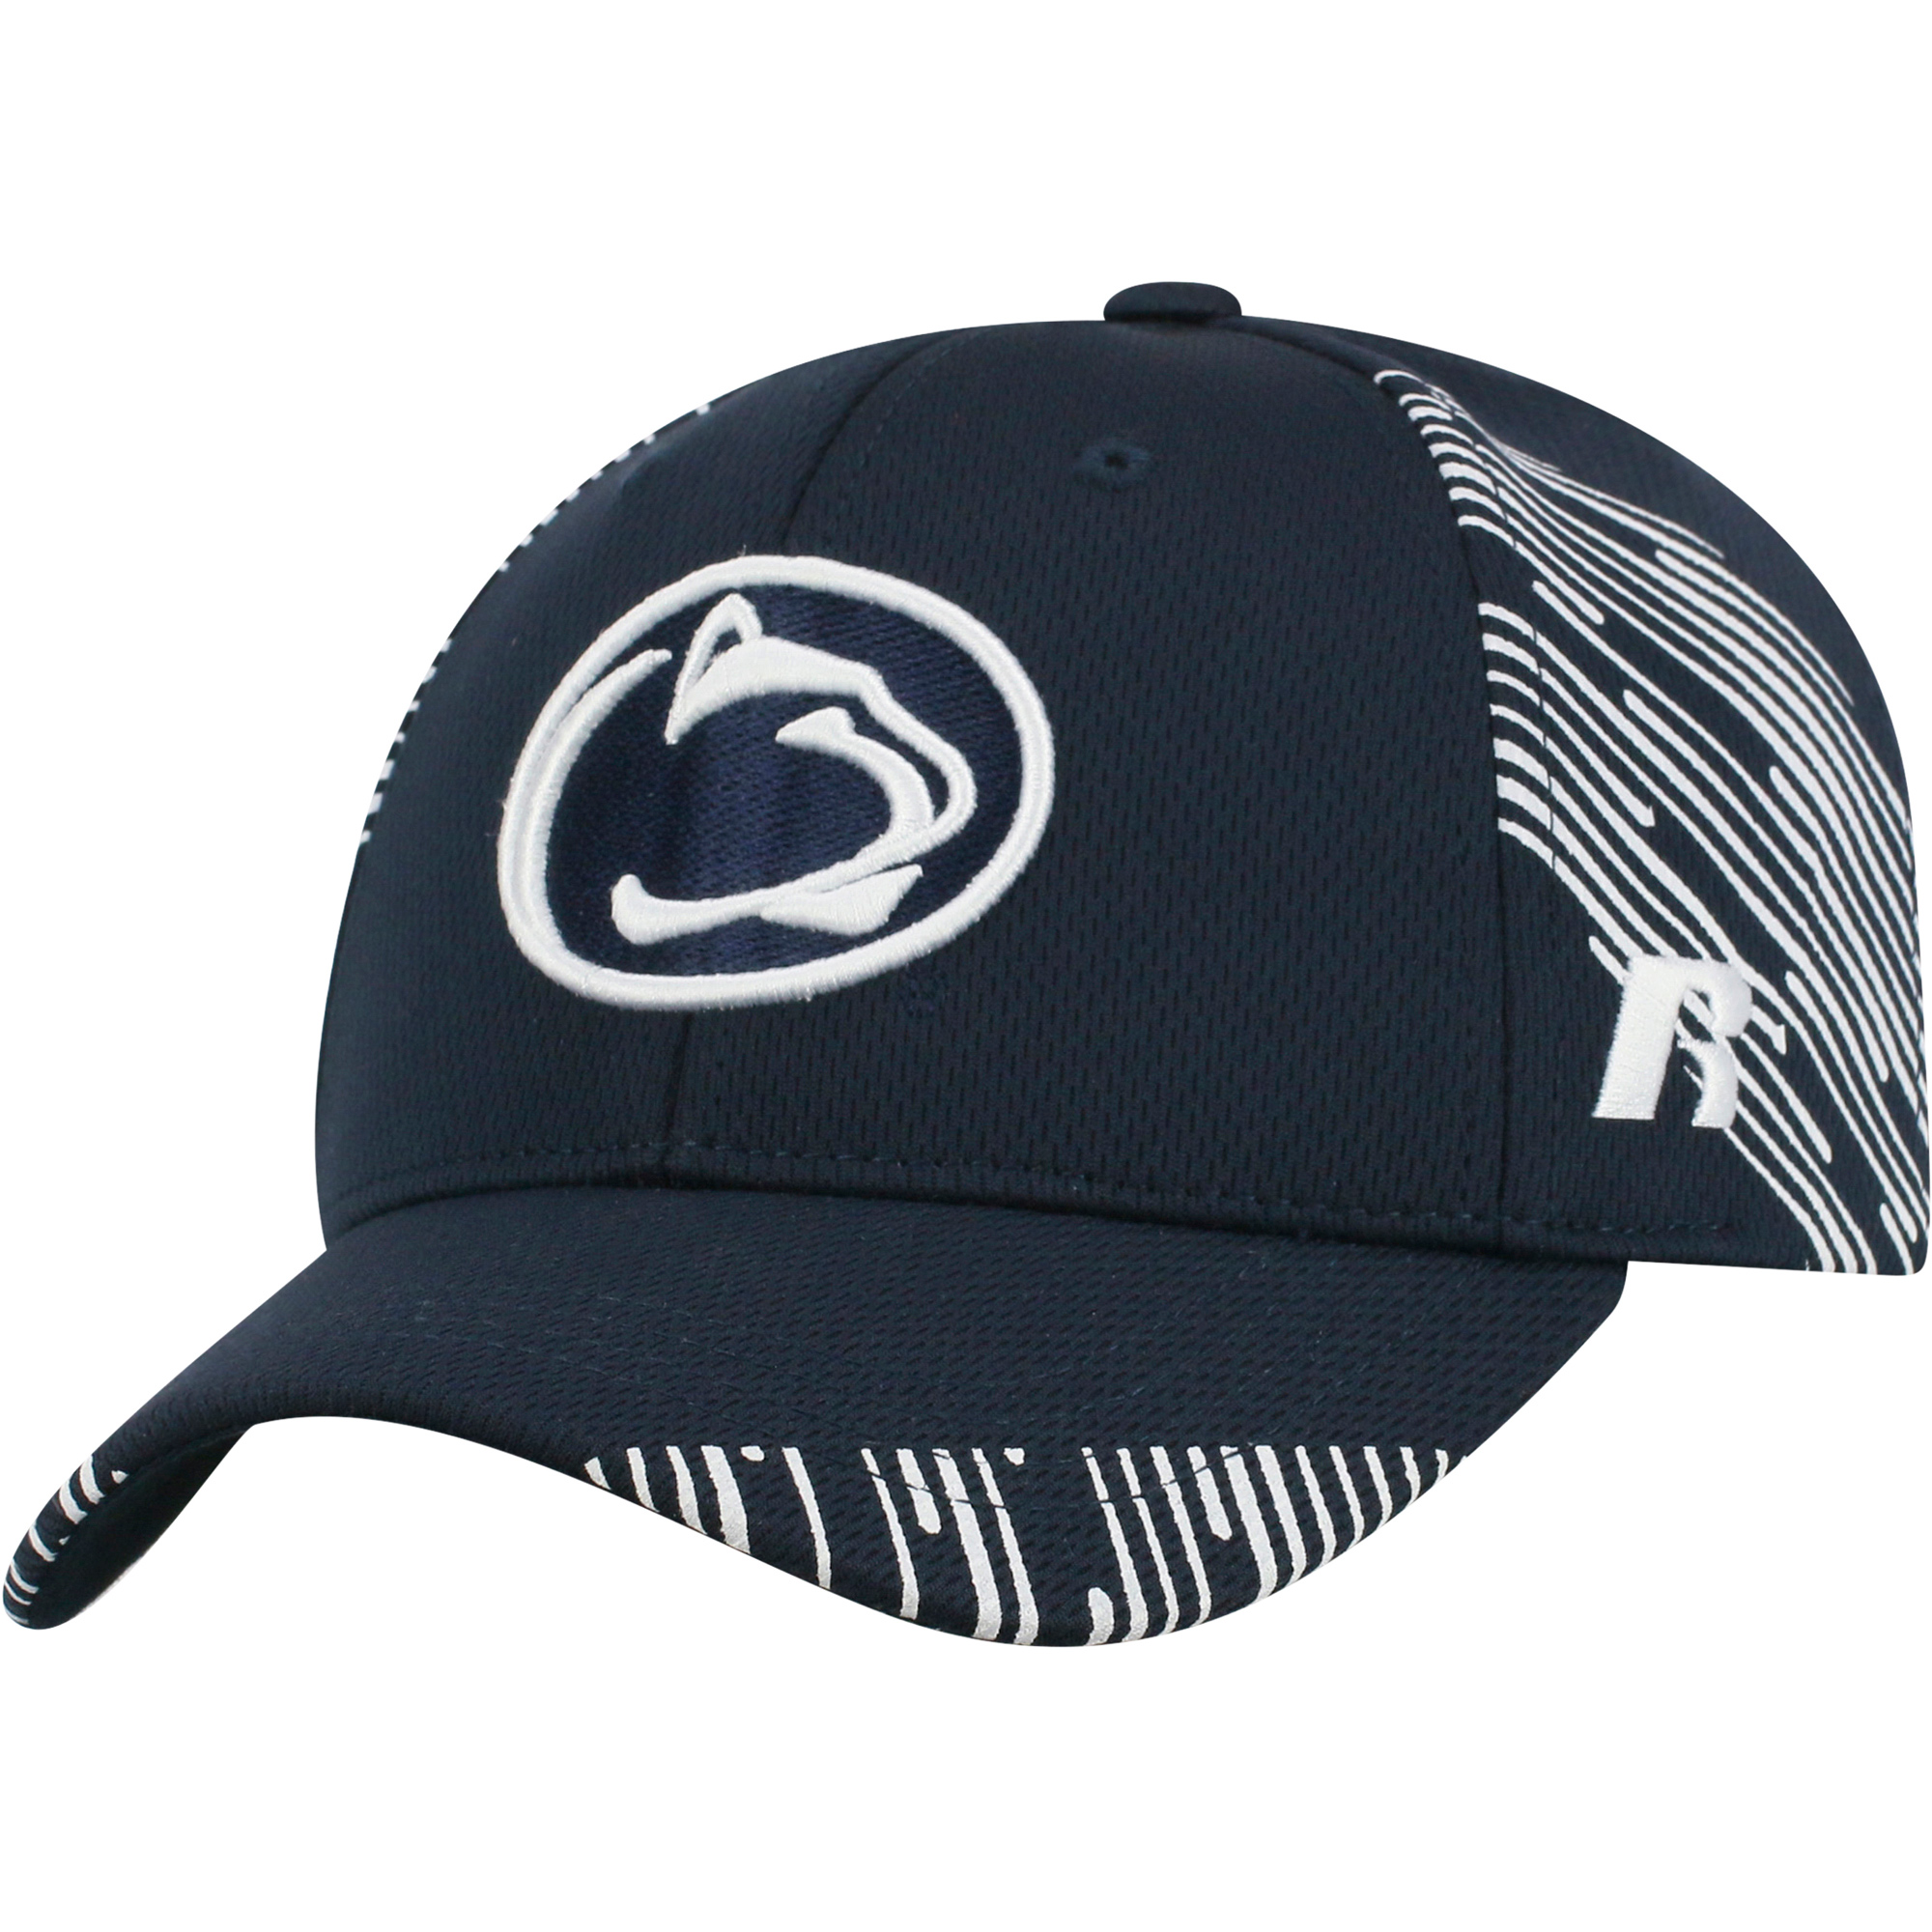 Men's Navy Penn State Nittany Lions Uptempo Adjustable Hat - OSFA